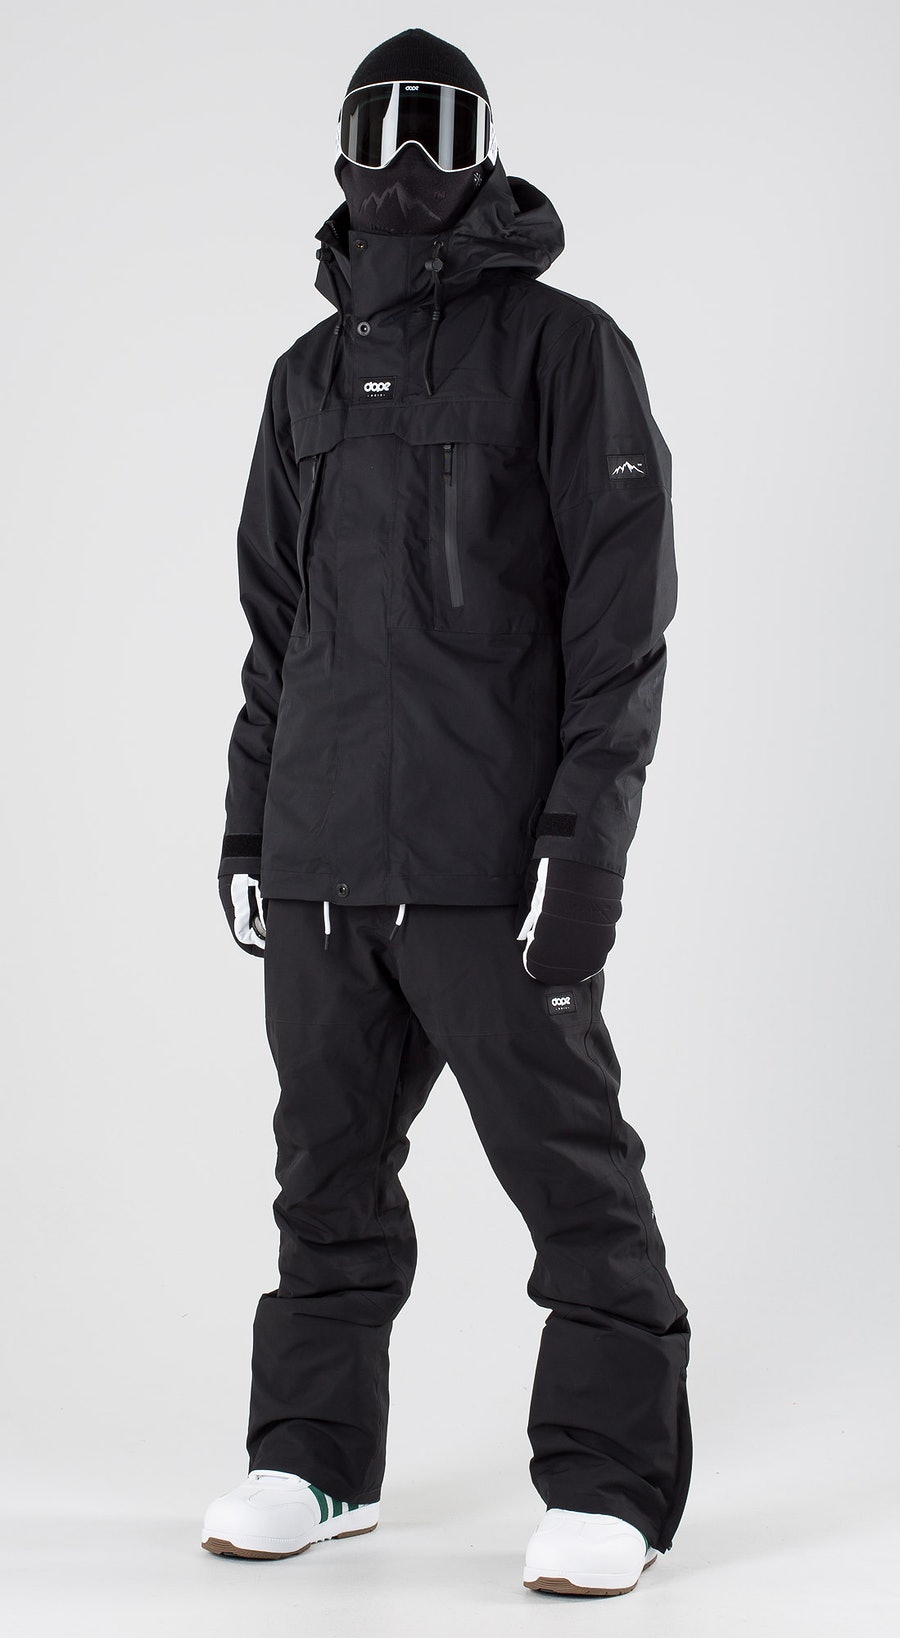 Dope Lunar Black Snowboard clothing Multi